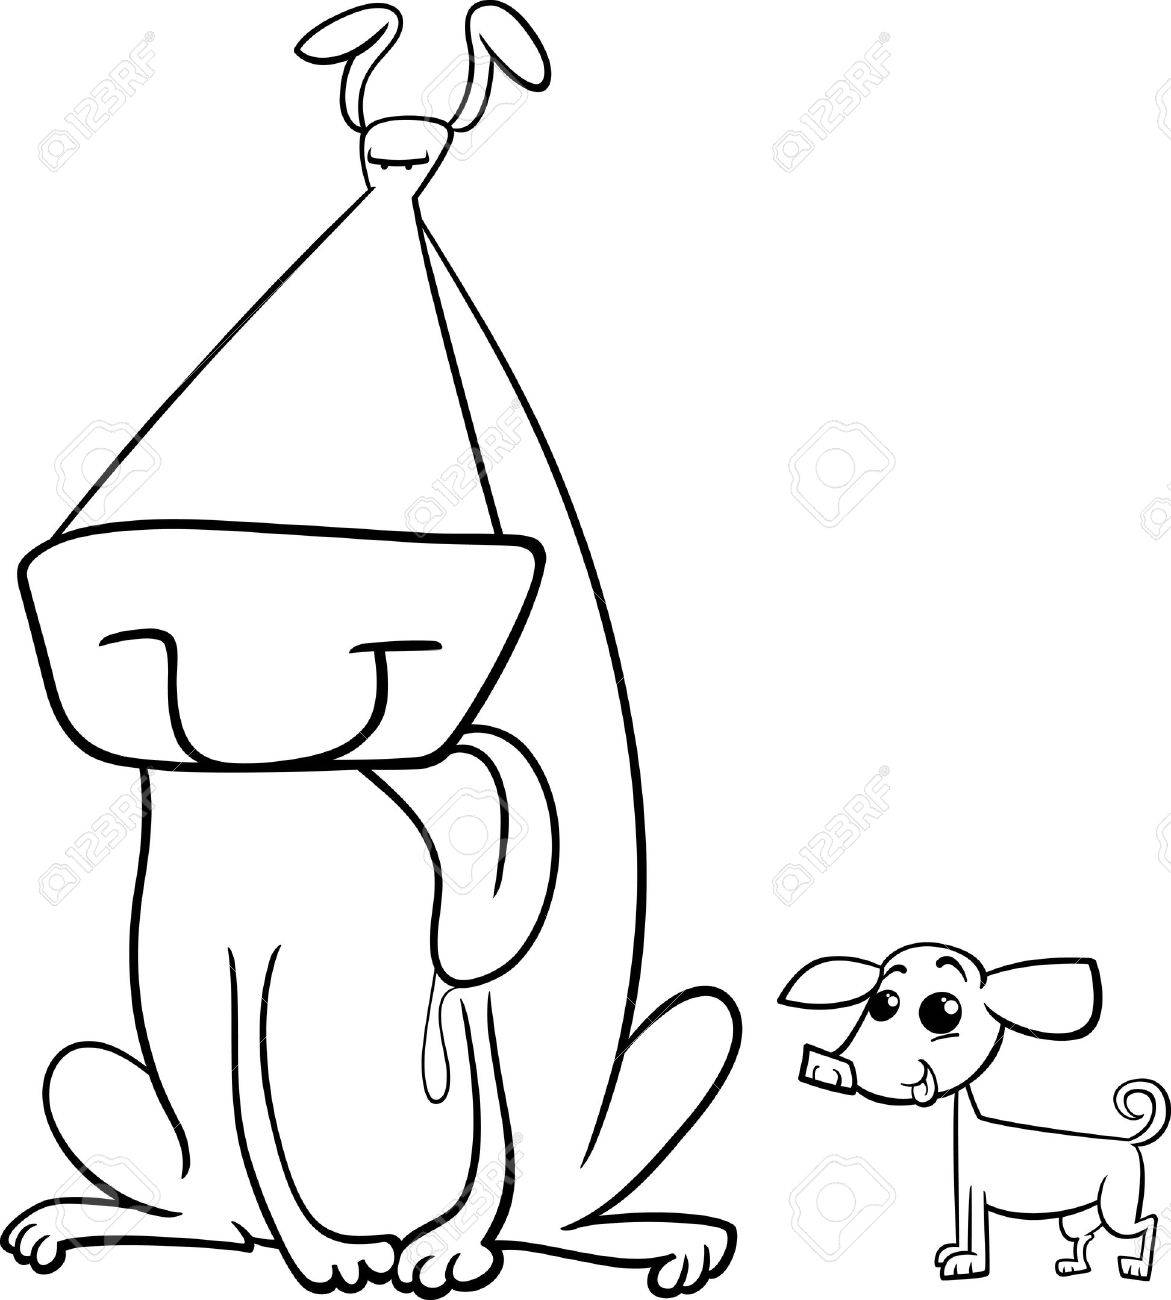 Small clipart black and white 4 » Clipart Station.